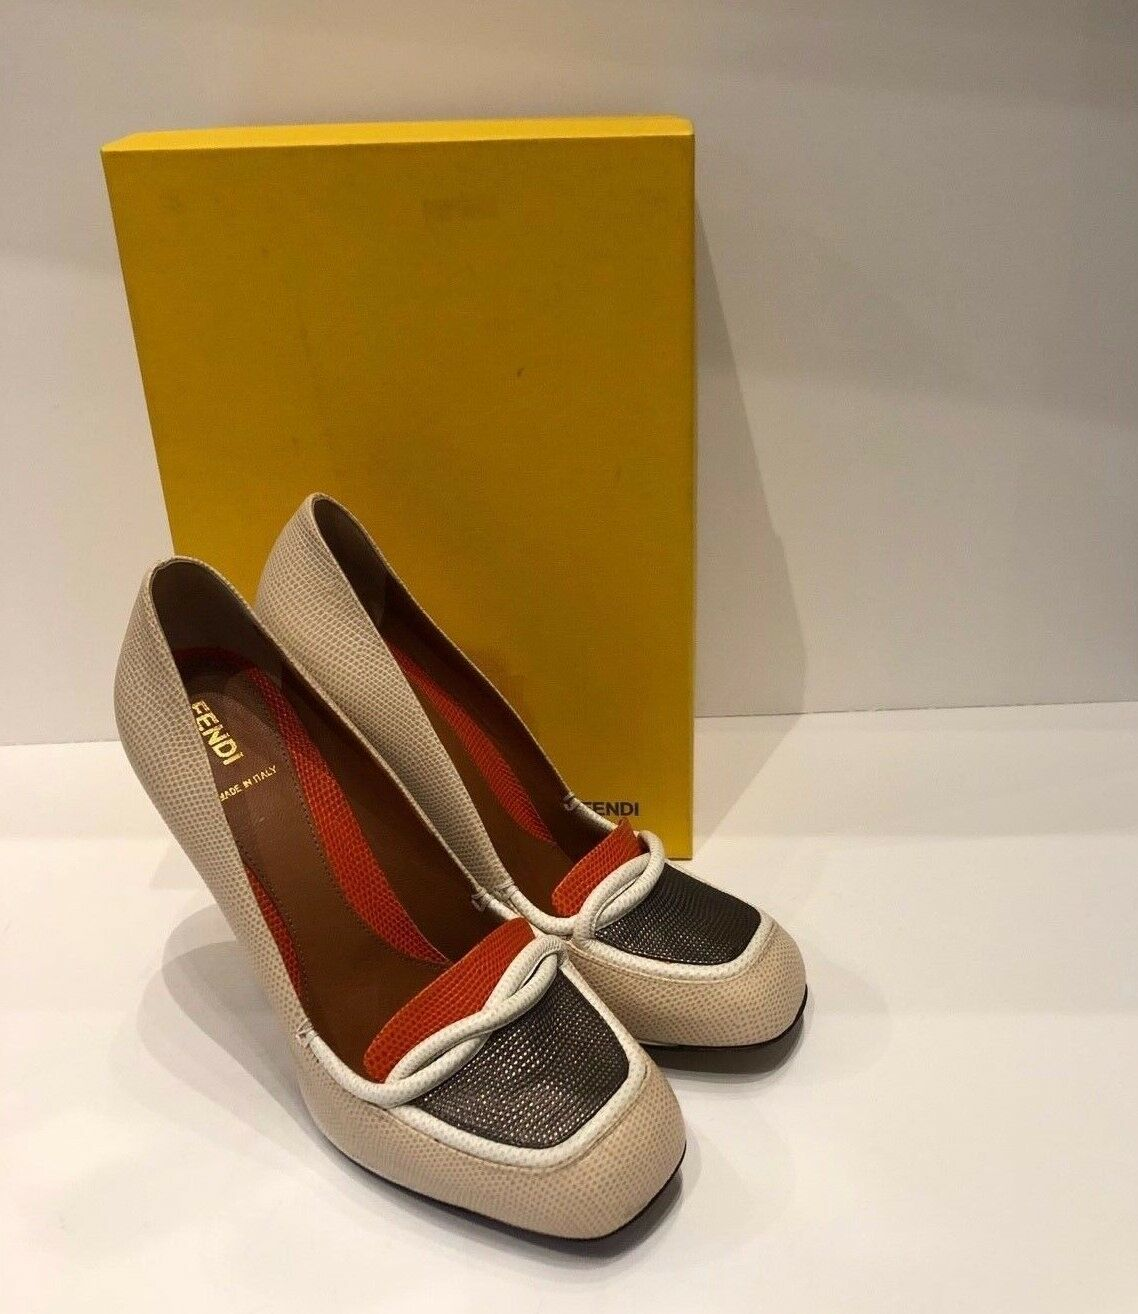 Fendi Multicolord Lizard Embossed colorblock Loafer Platform Pumps w  box Sz 41